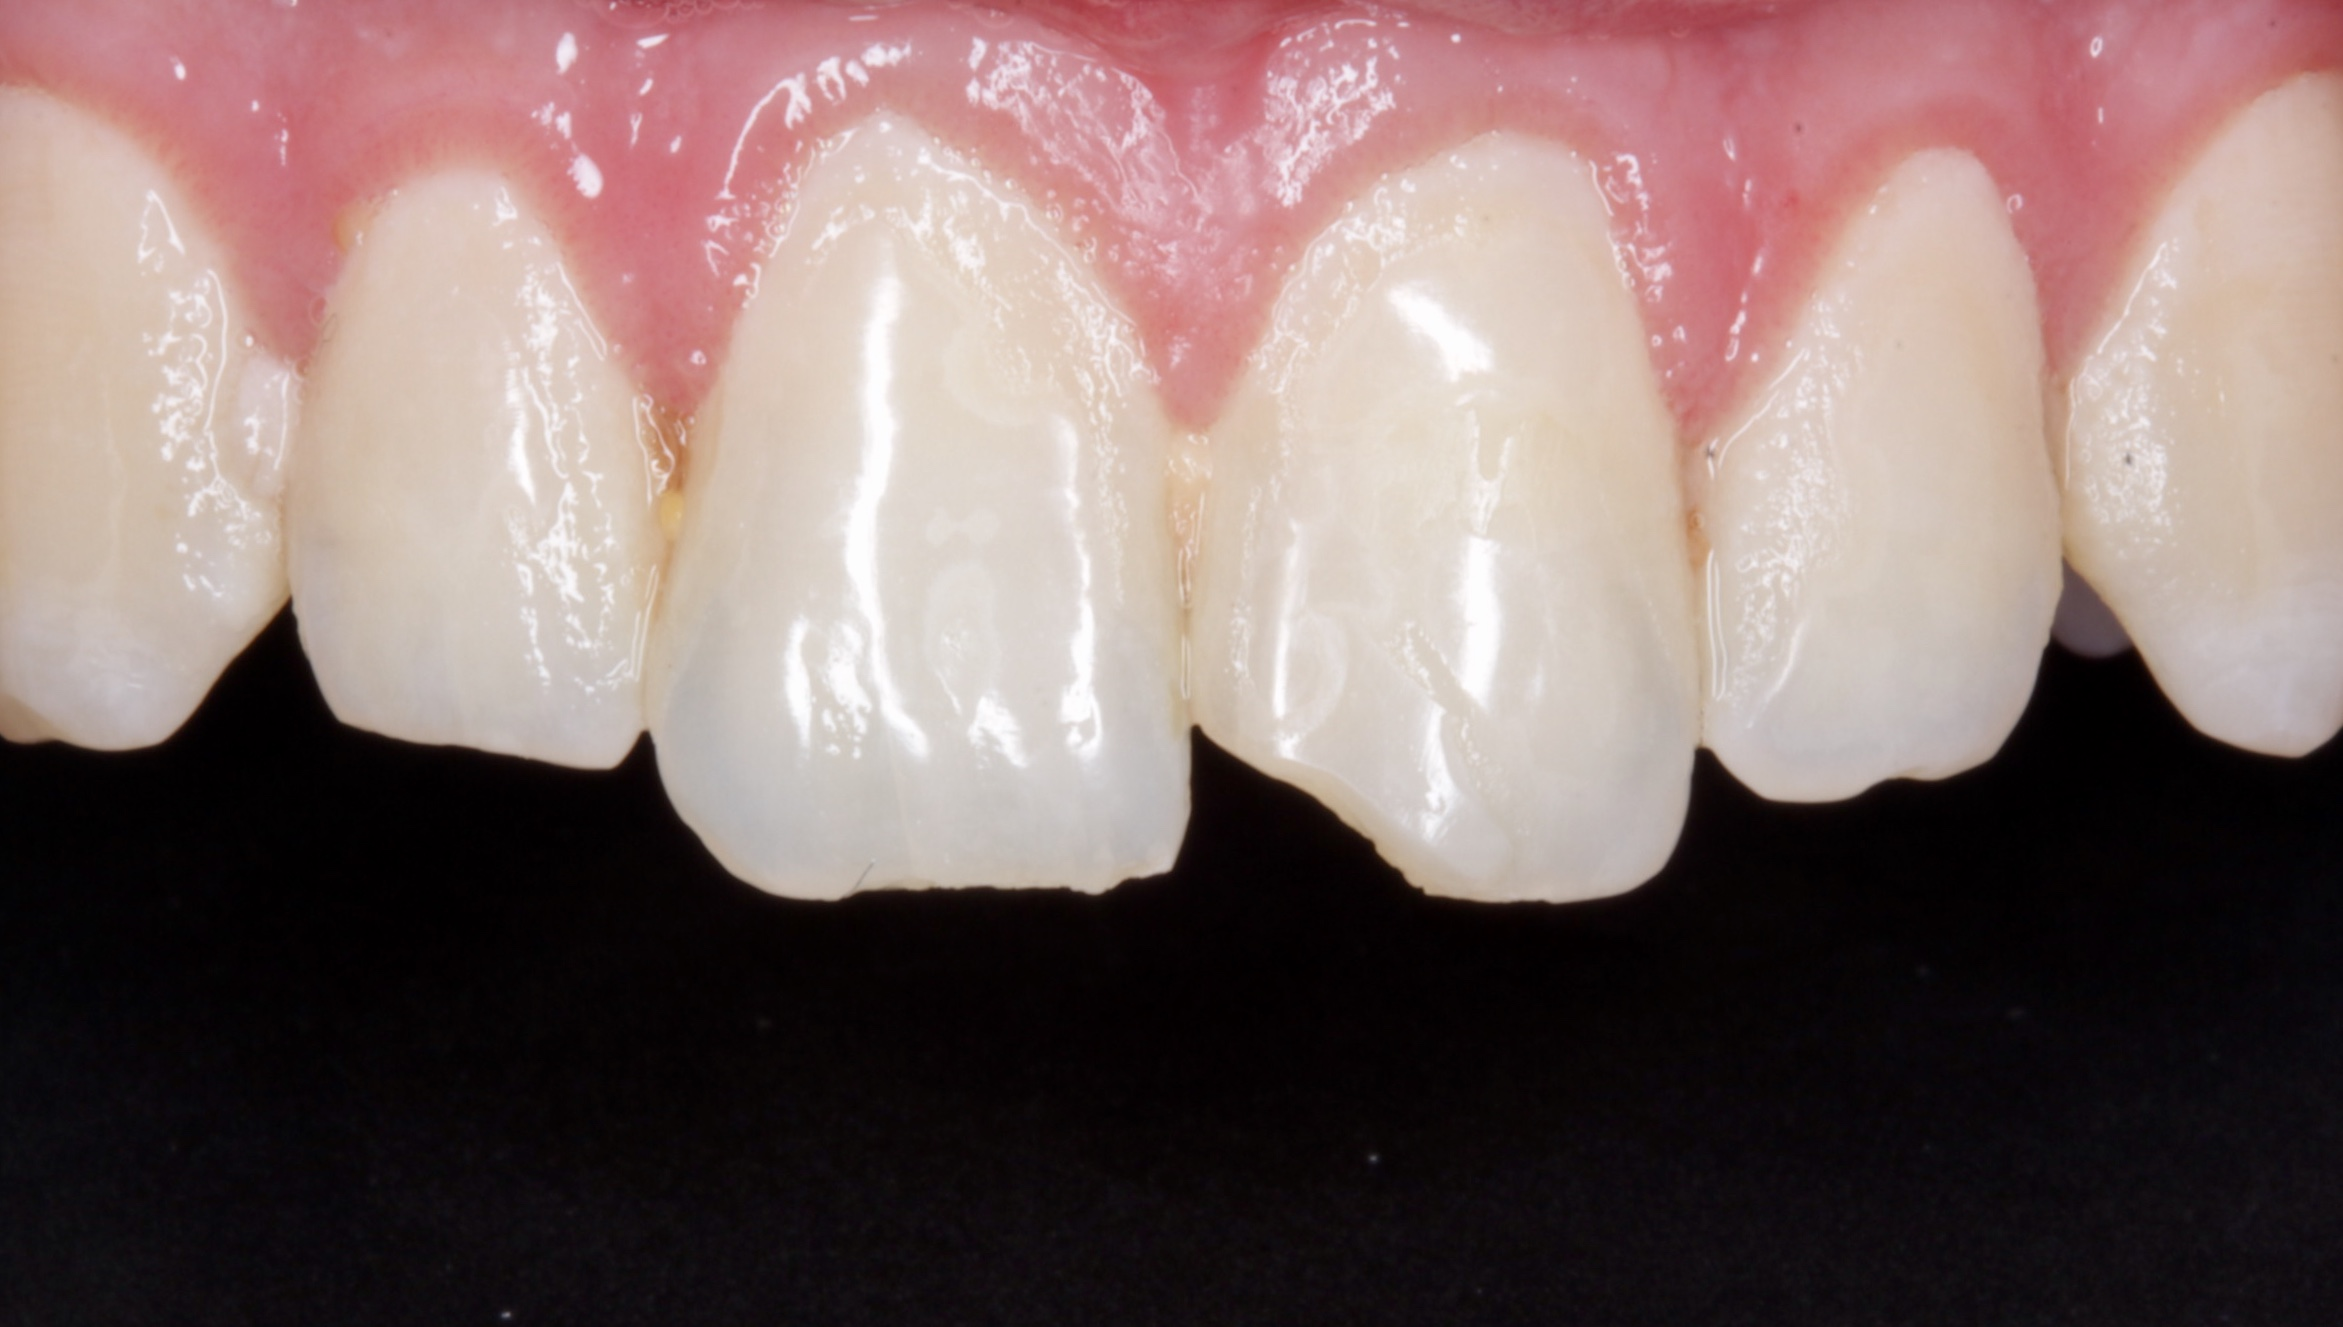 Initial situation - An accident resulted in incisal edge fracture for the front tooth.